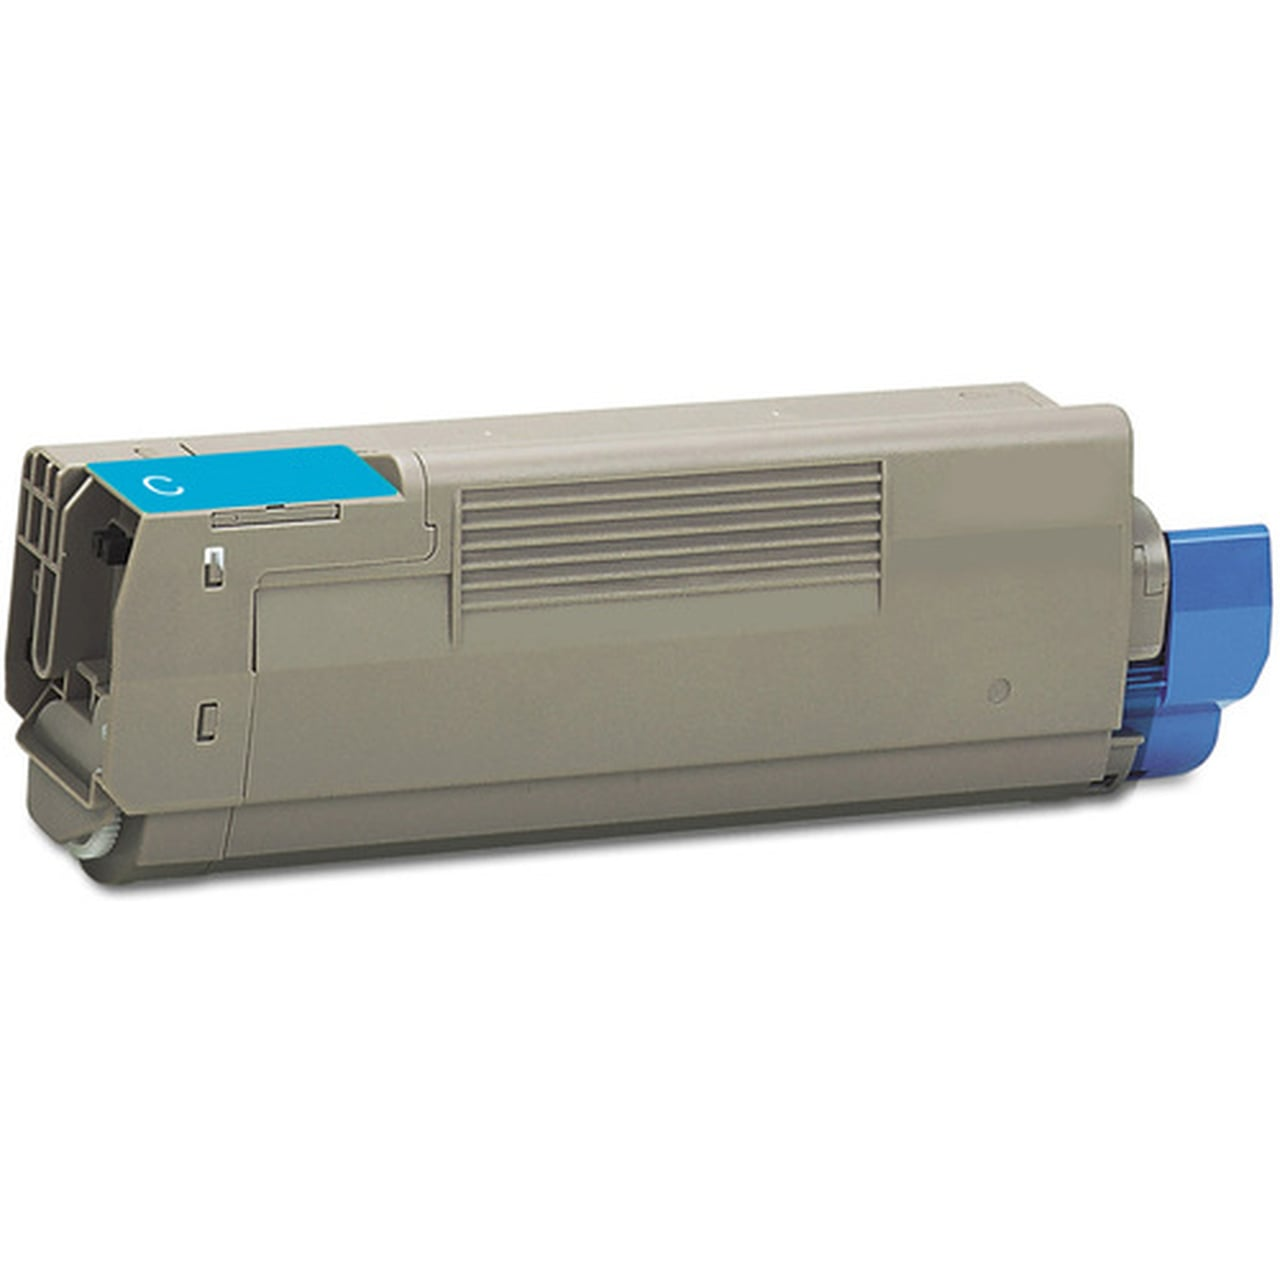 44318603 Toner Cartridge - Okidata Compatible (Cyan)